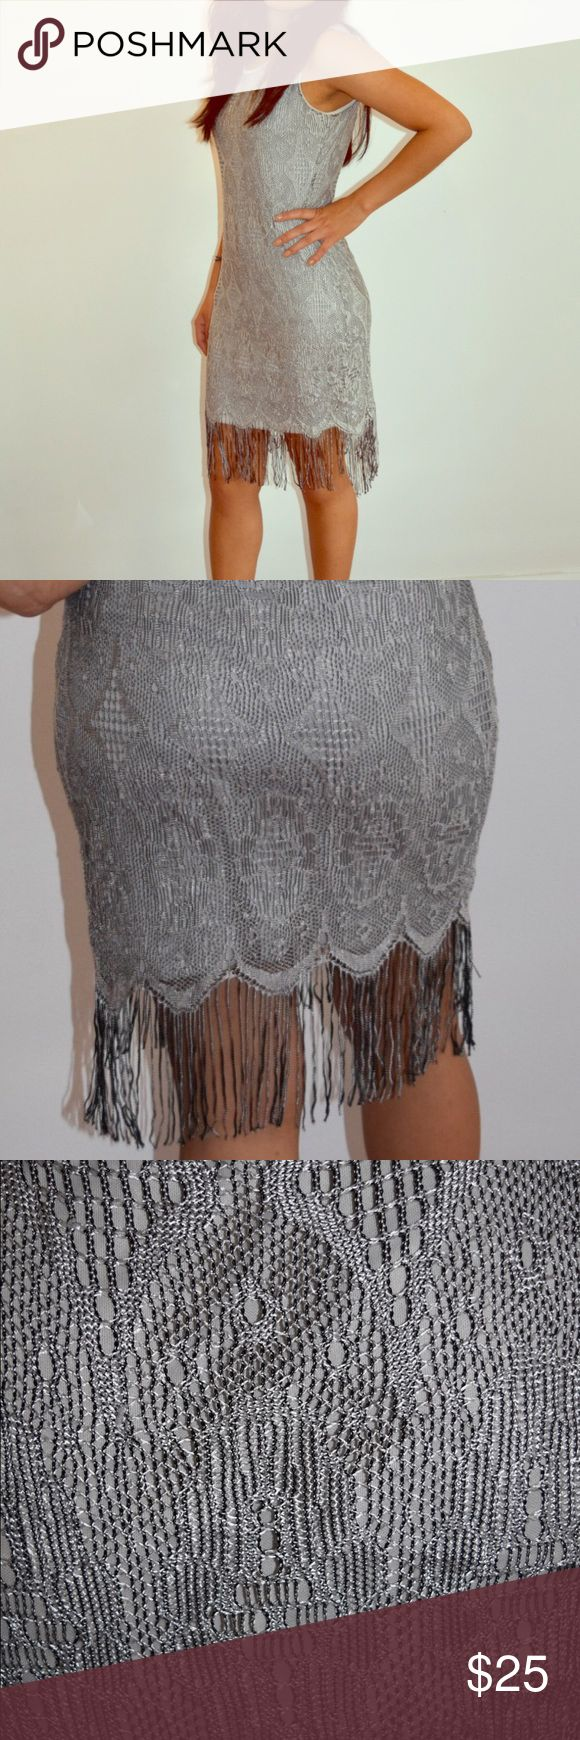 Venus Flapper Girl Dress or Bathing Suit Cover Grey and silver crochet/lace overlay dress. It is light and airy and is a great transition dress for a sexy day at the beach or a fun night out. Venus Dresses